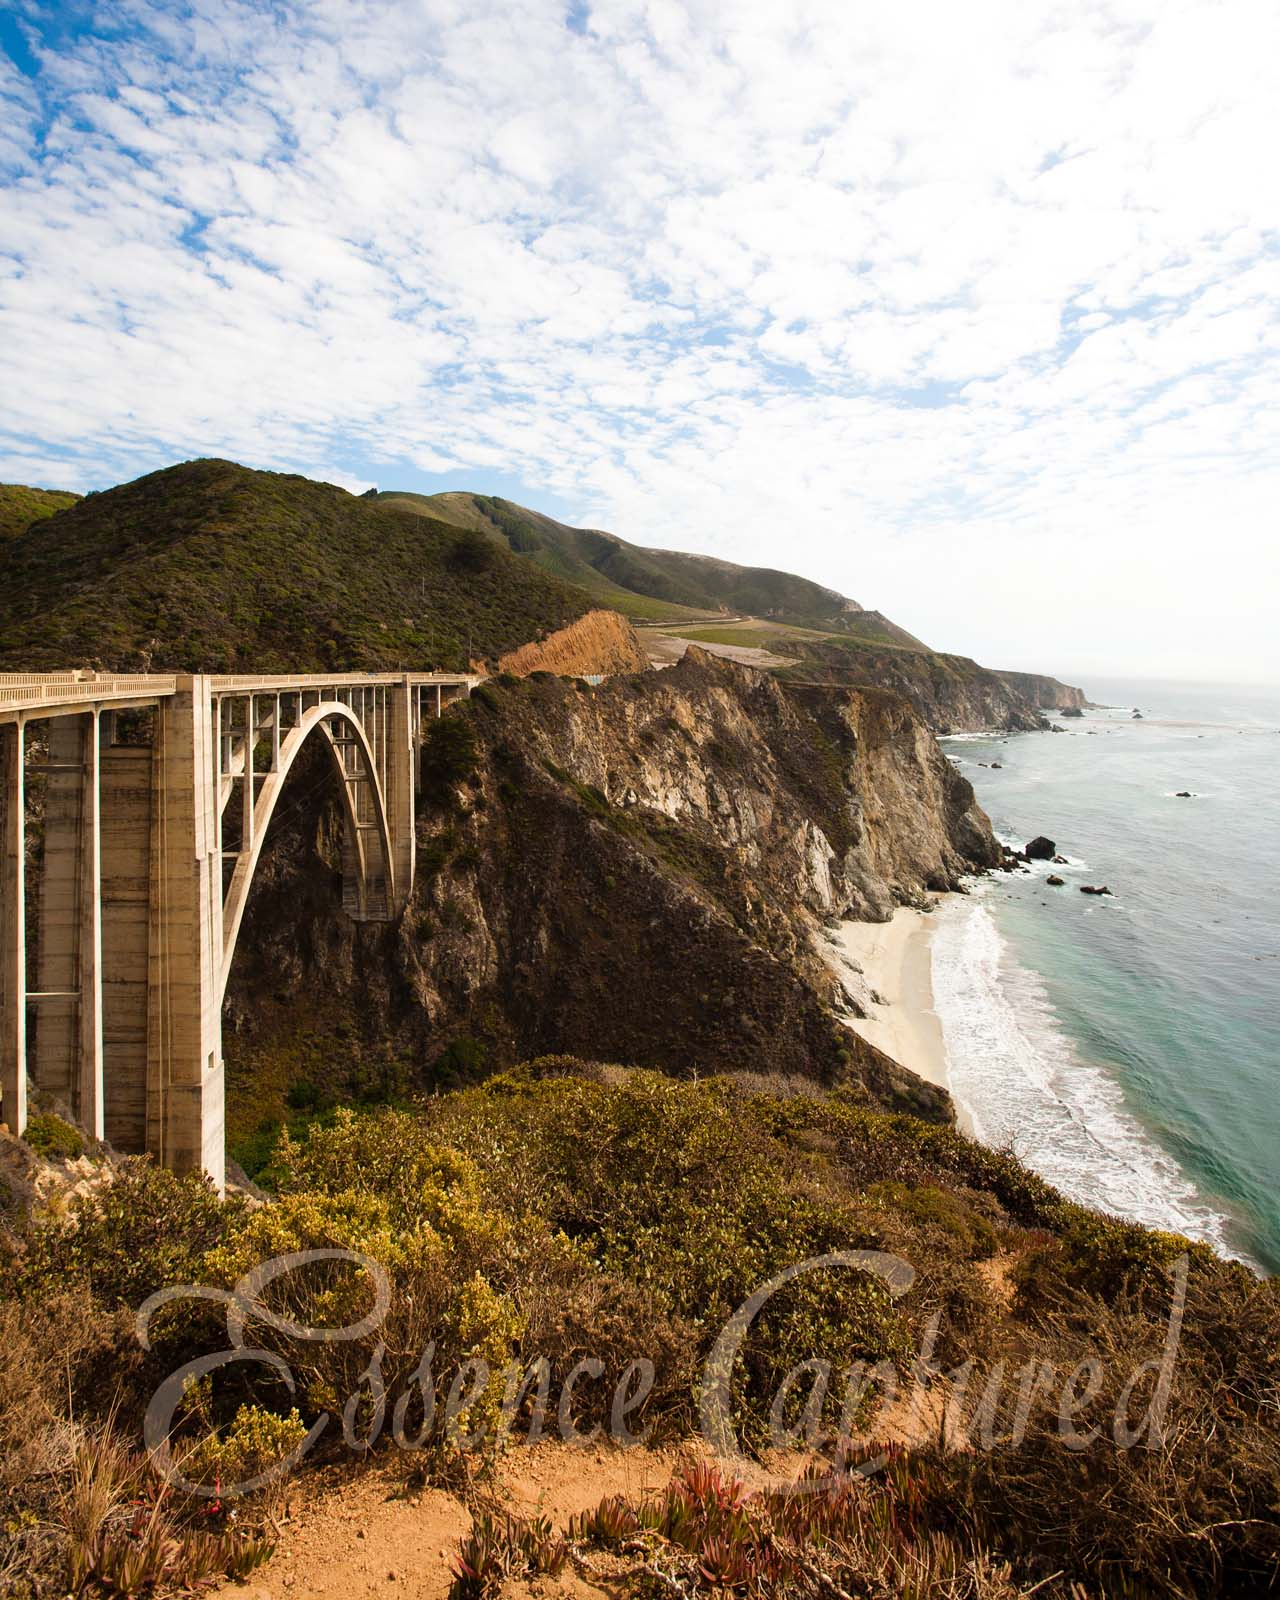 Bixby Bridge Big Sur Coast Highway 1 California